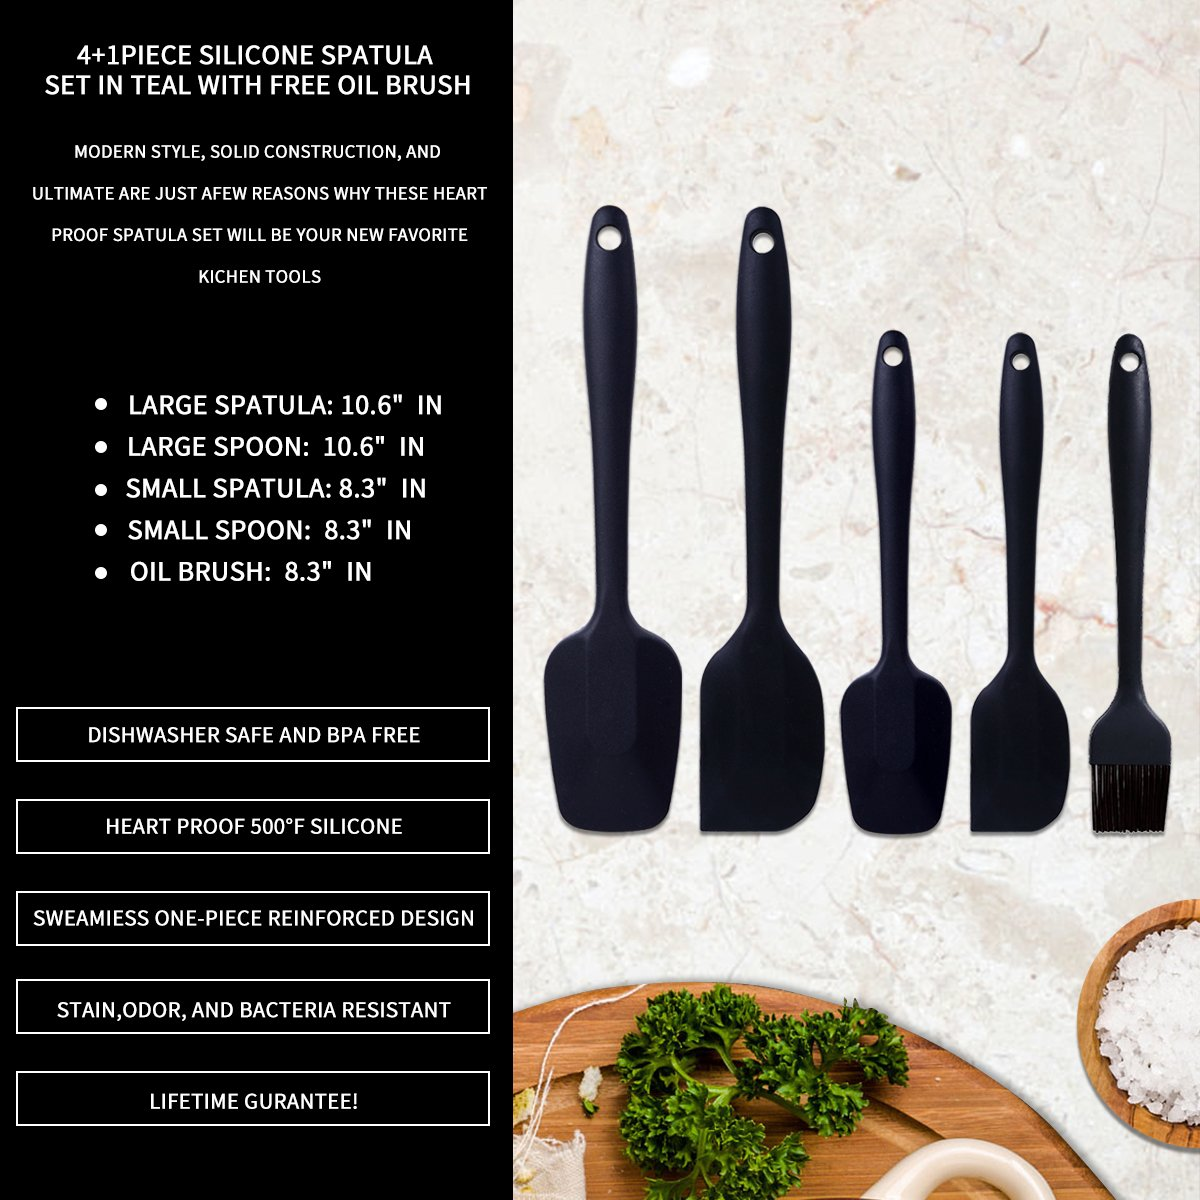 Silicone Spatula Set WISHPOOL 4+1-Piece Non-Stick/Heat Resistant kitchen Cooking Utensil Set Created for Cooking/Baking and Mixing with free gift Silicone Oil brush